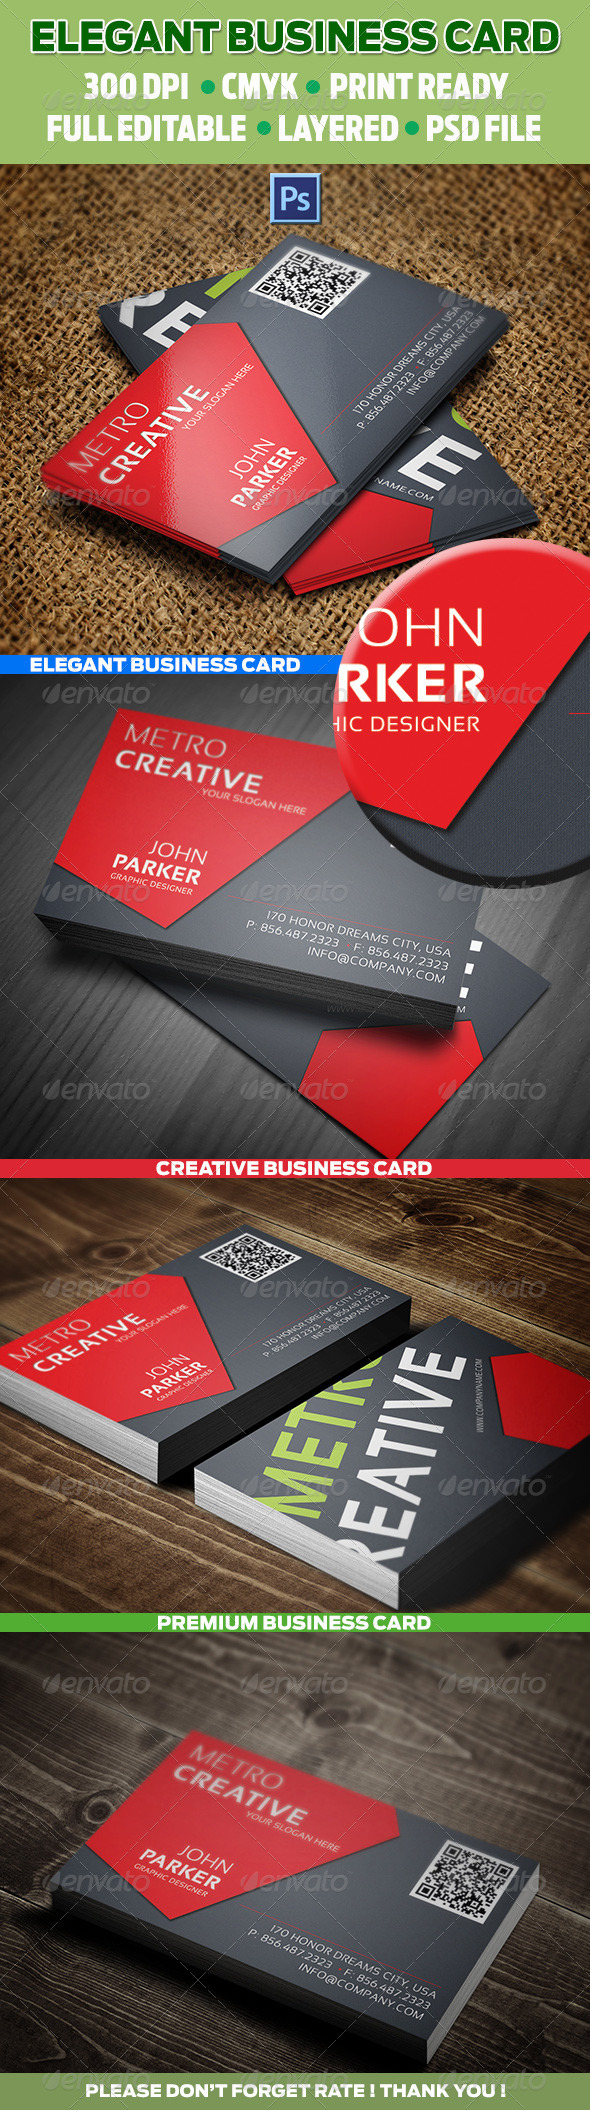 Creative business cards 19 graphicriver 3520 375 x 225 buy creative business cards 19 by reddes on graphicriver x with bleed settings 300 dpi cmyk print ready full editable layered free font http reheart Images